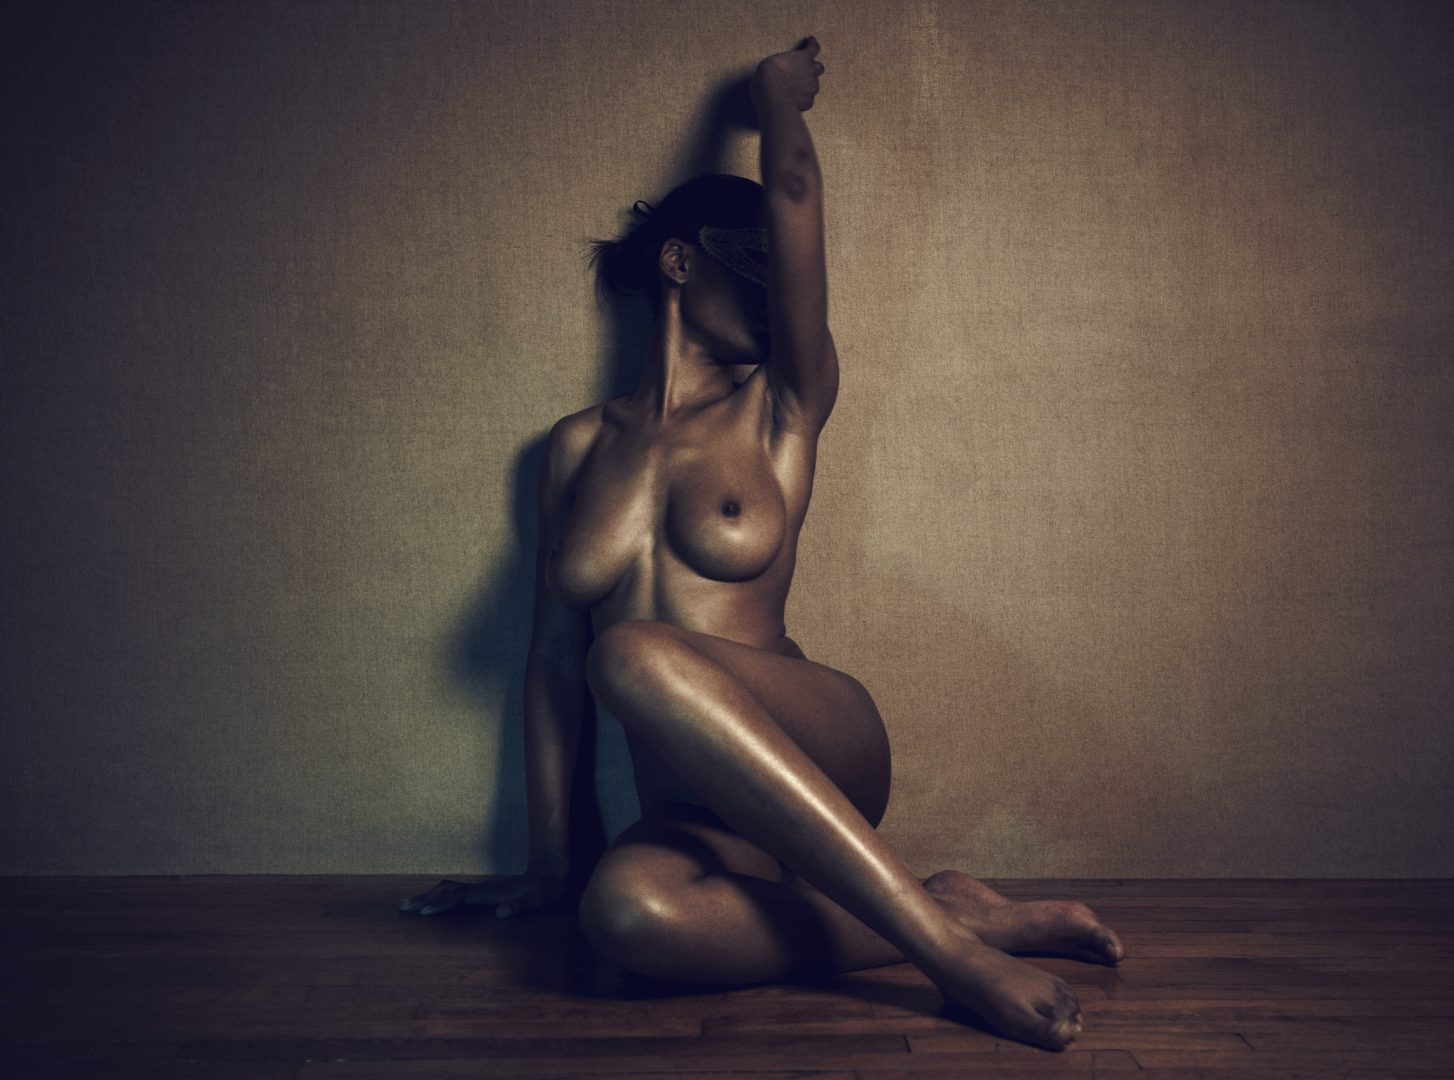 Naked girl with mask sitting on floor by Stefan Rappo